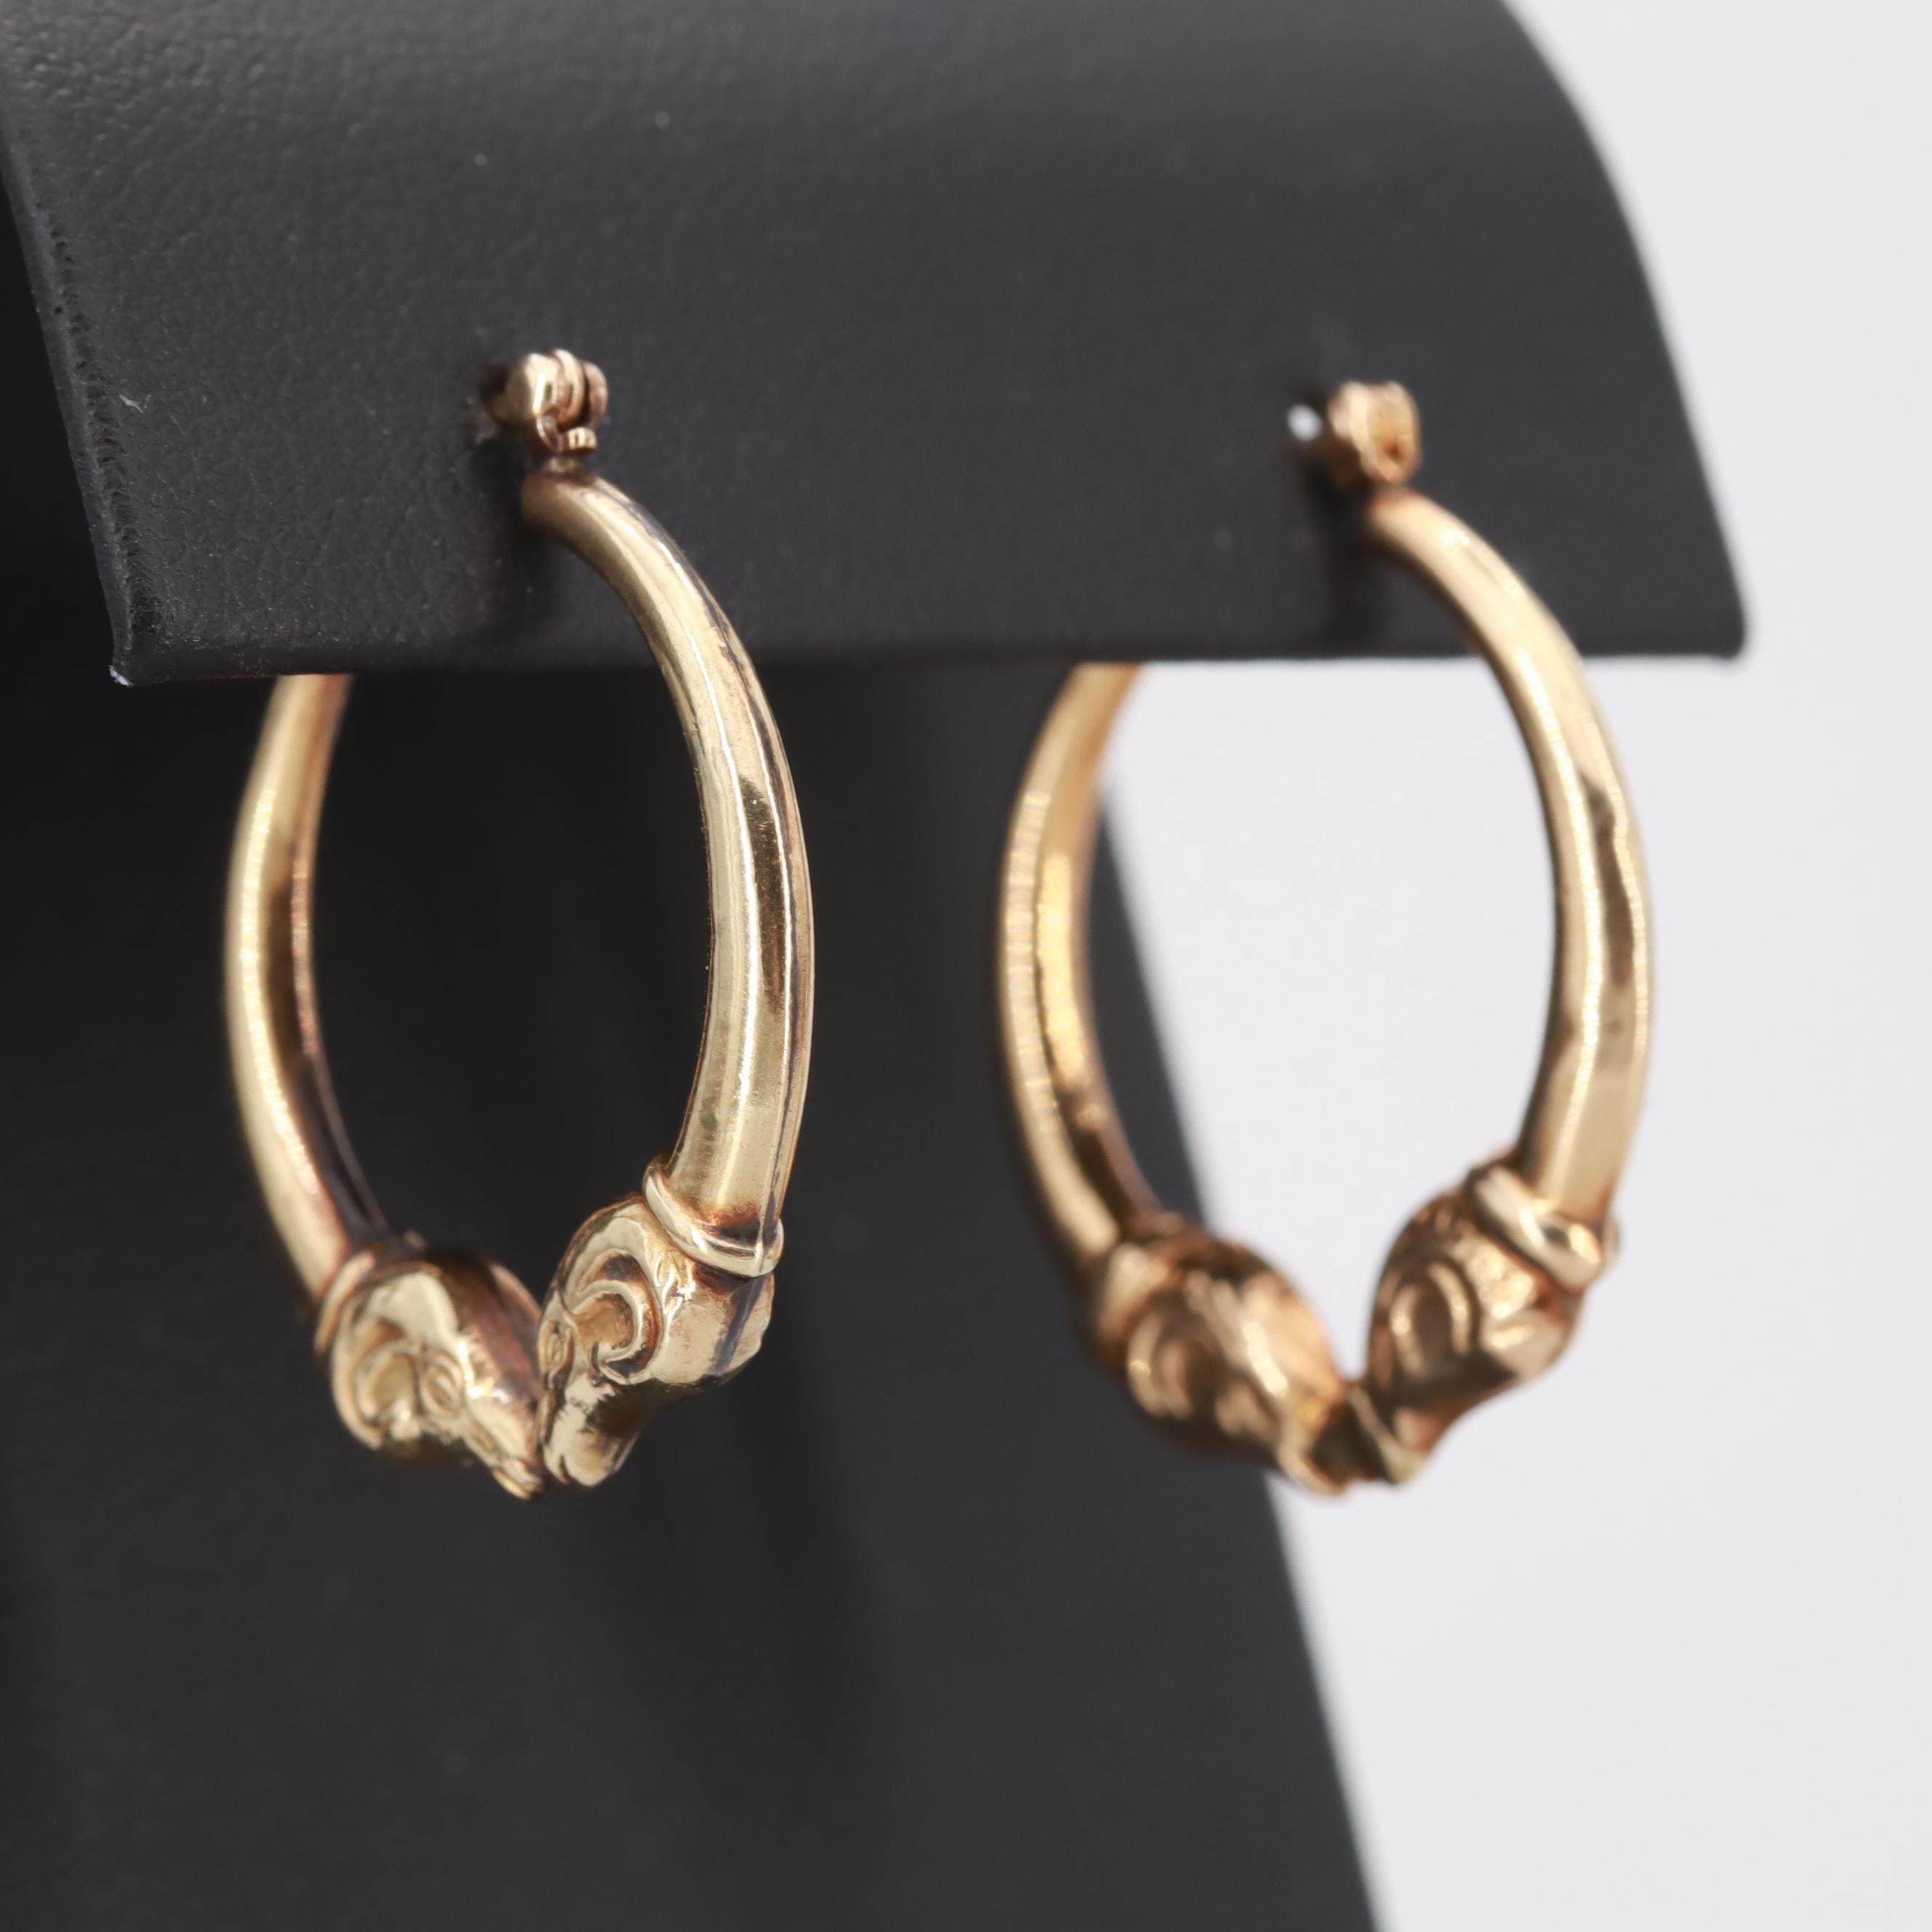 14K Yellow Gold Earrings with Ram Motif